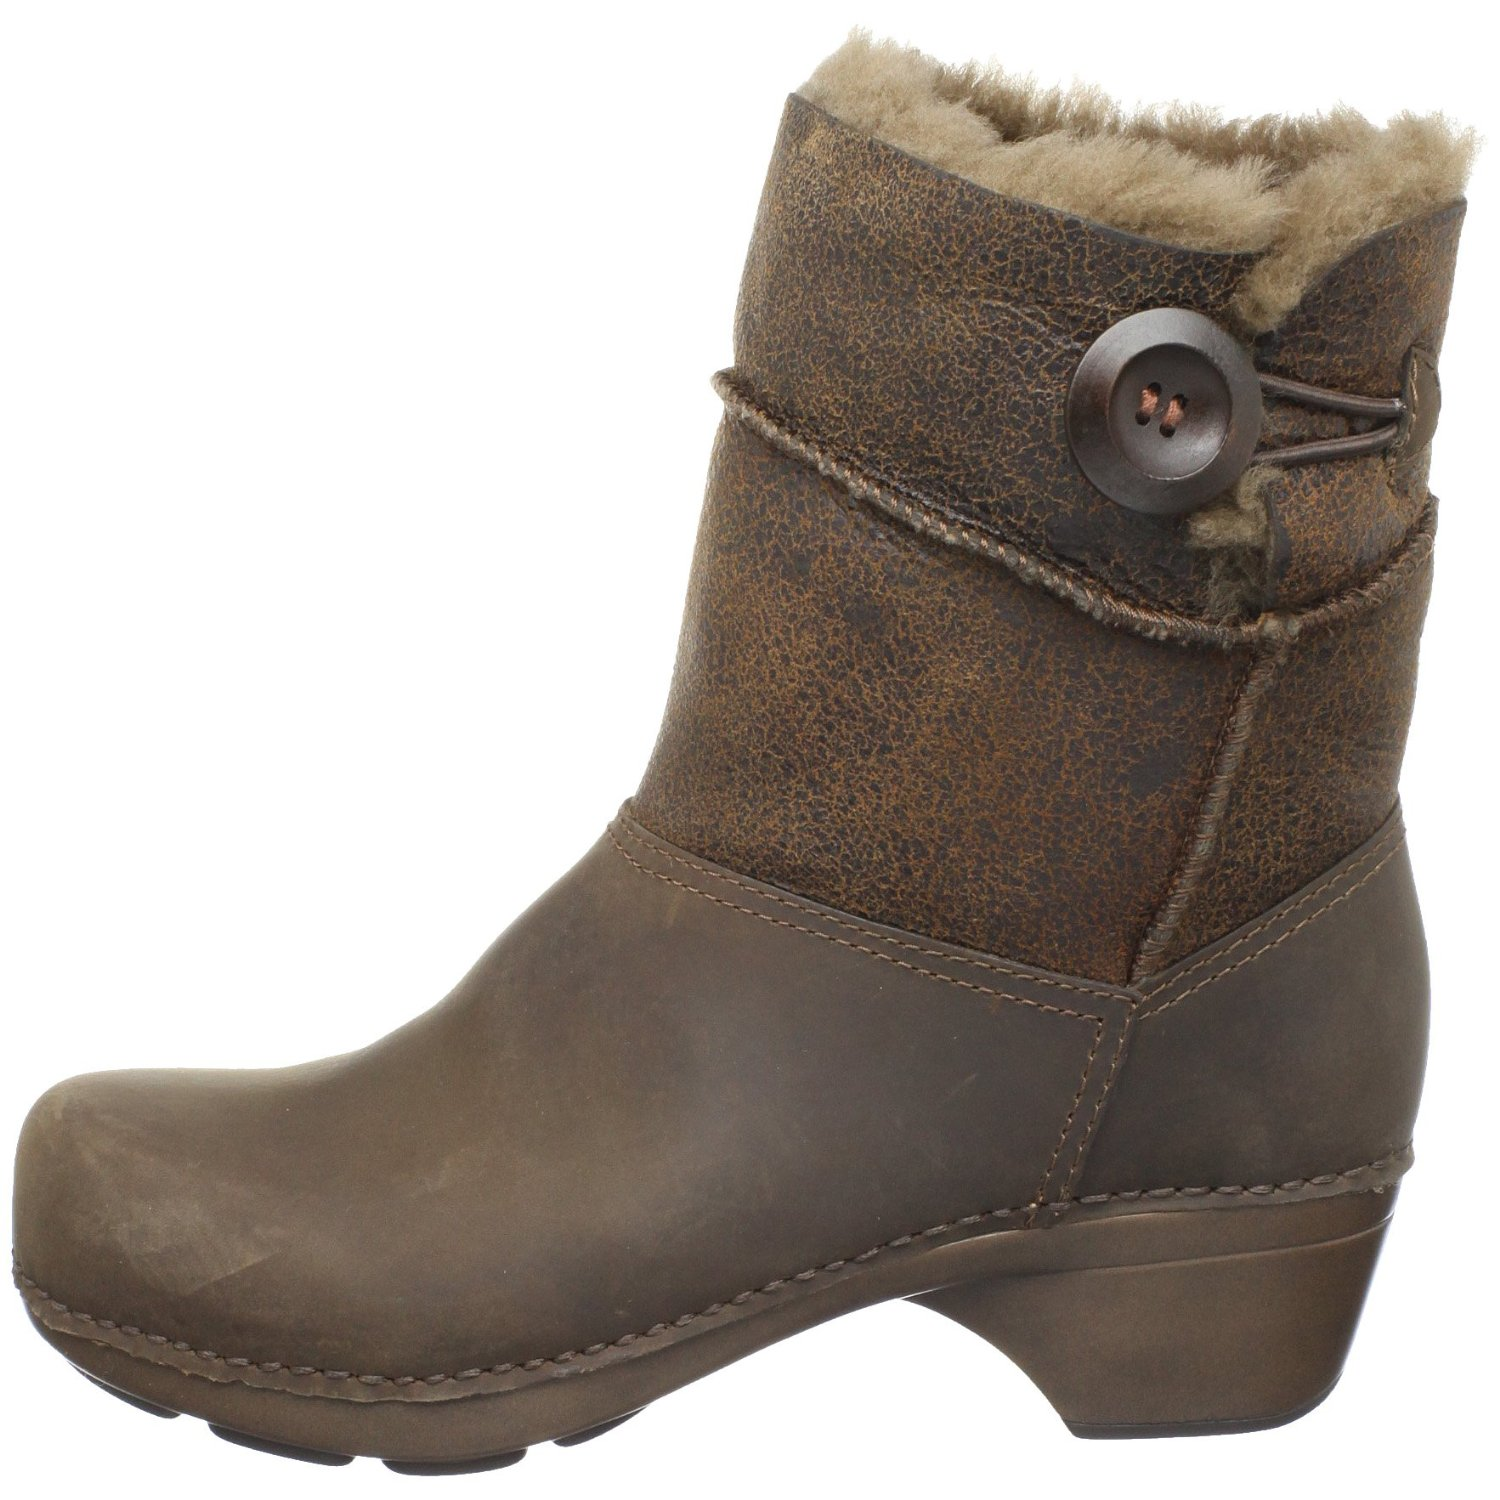 dansko boots on sale